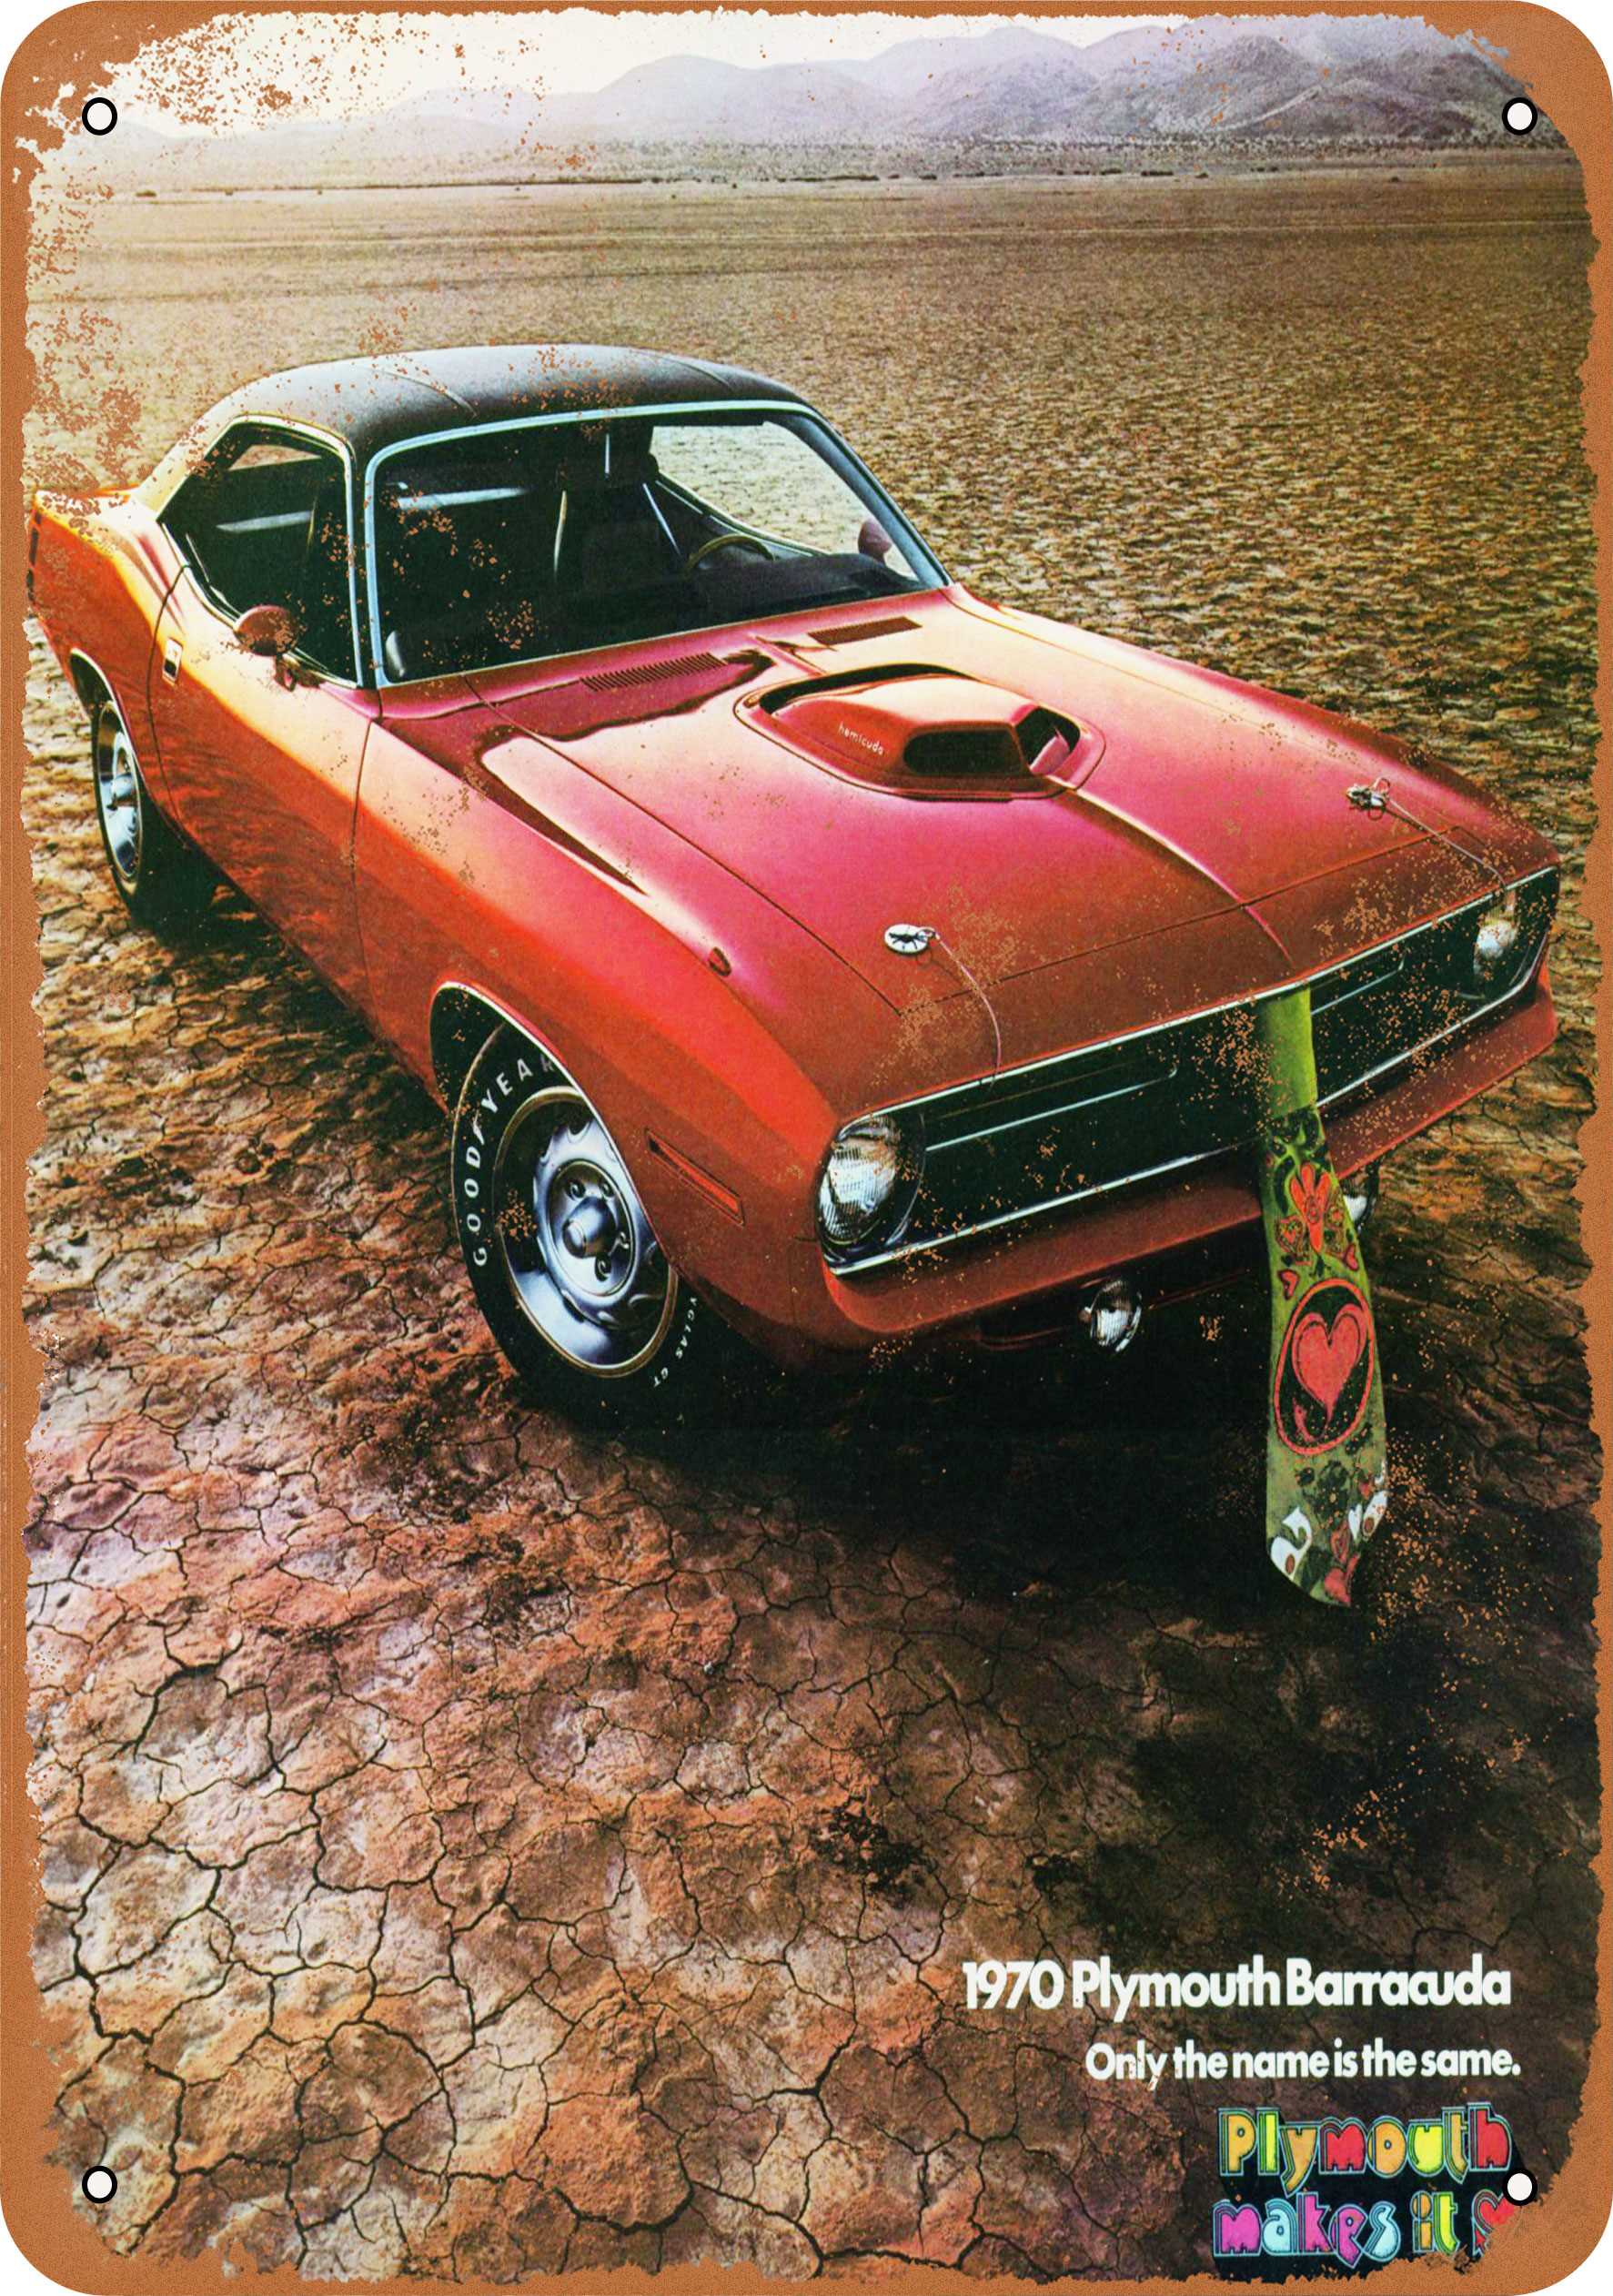 "7"" x 10"" 1970 Plymouth Barracuda Vintage Look Reproduction Metal Sign 7141"